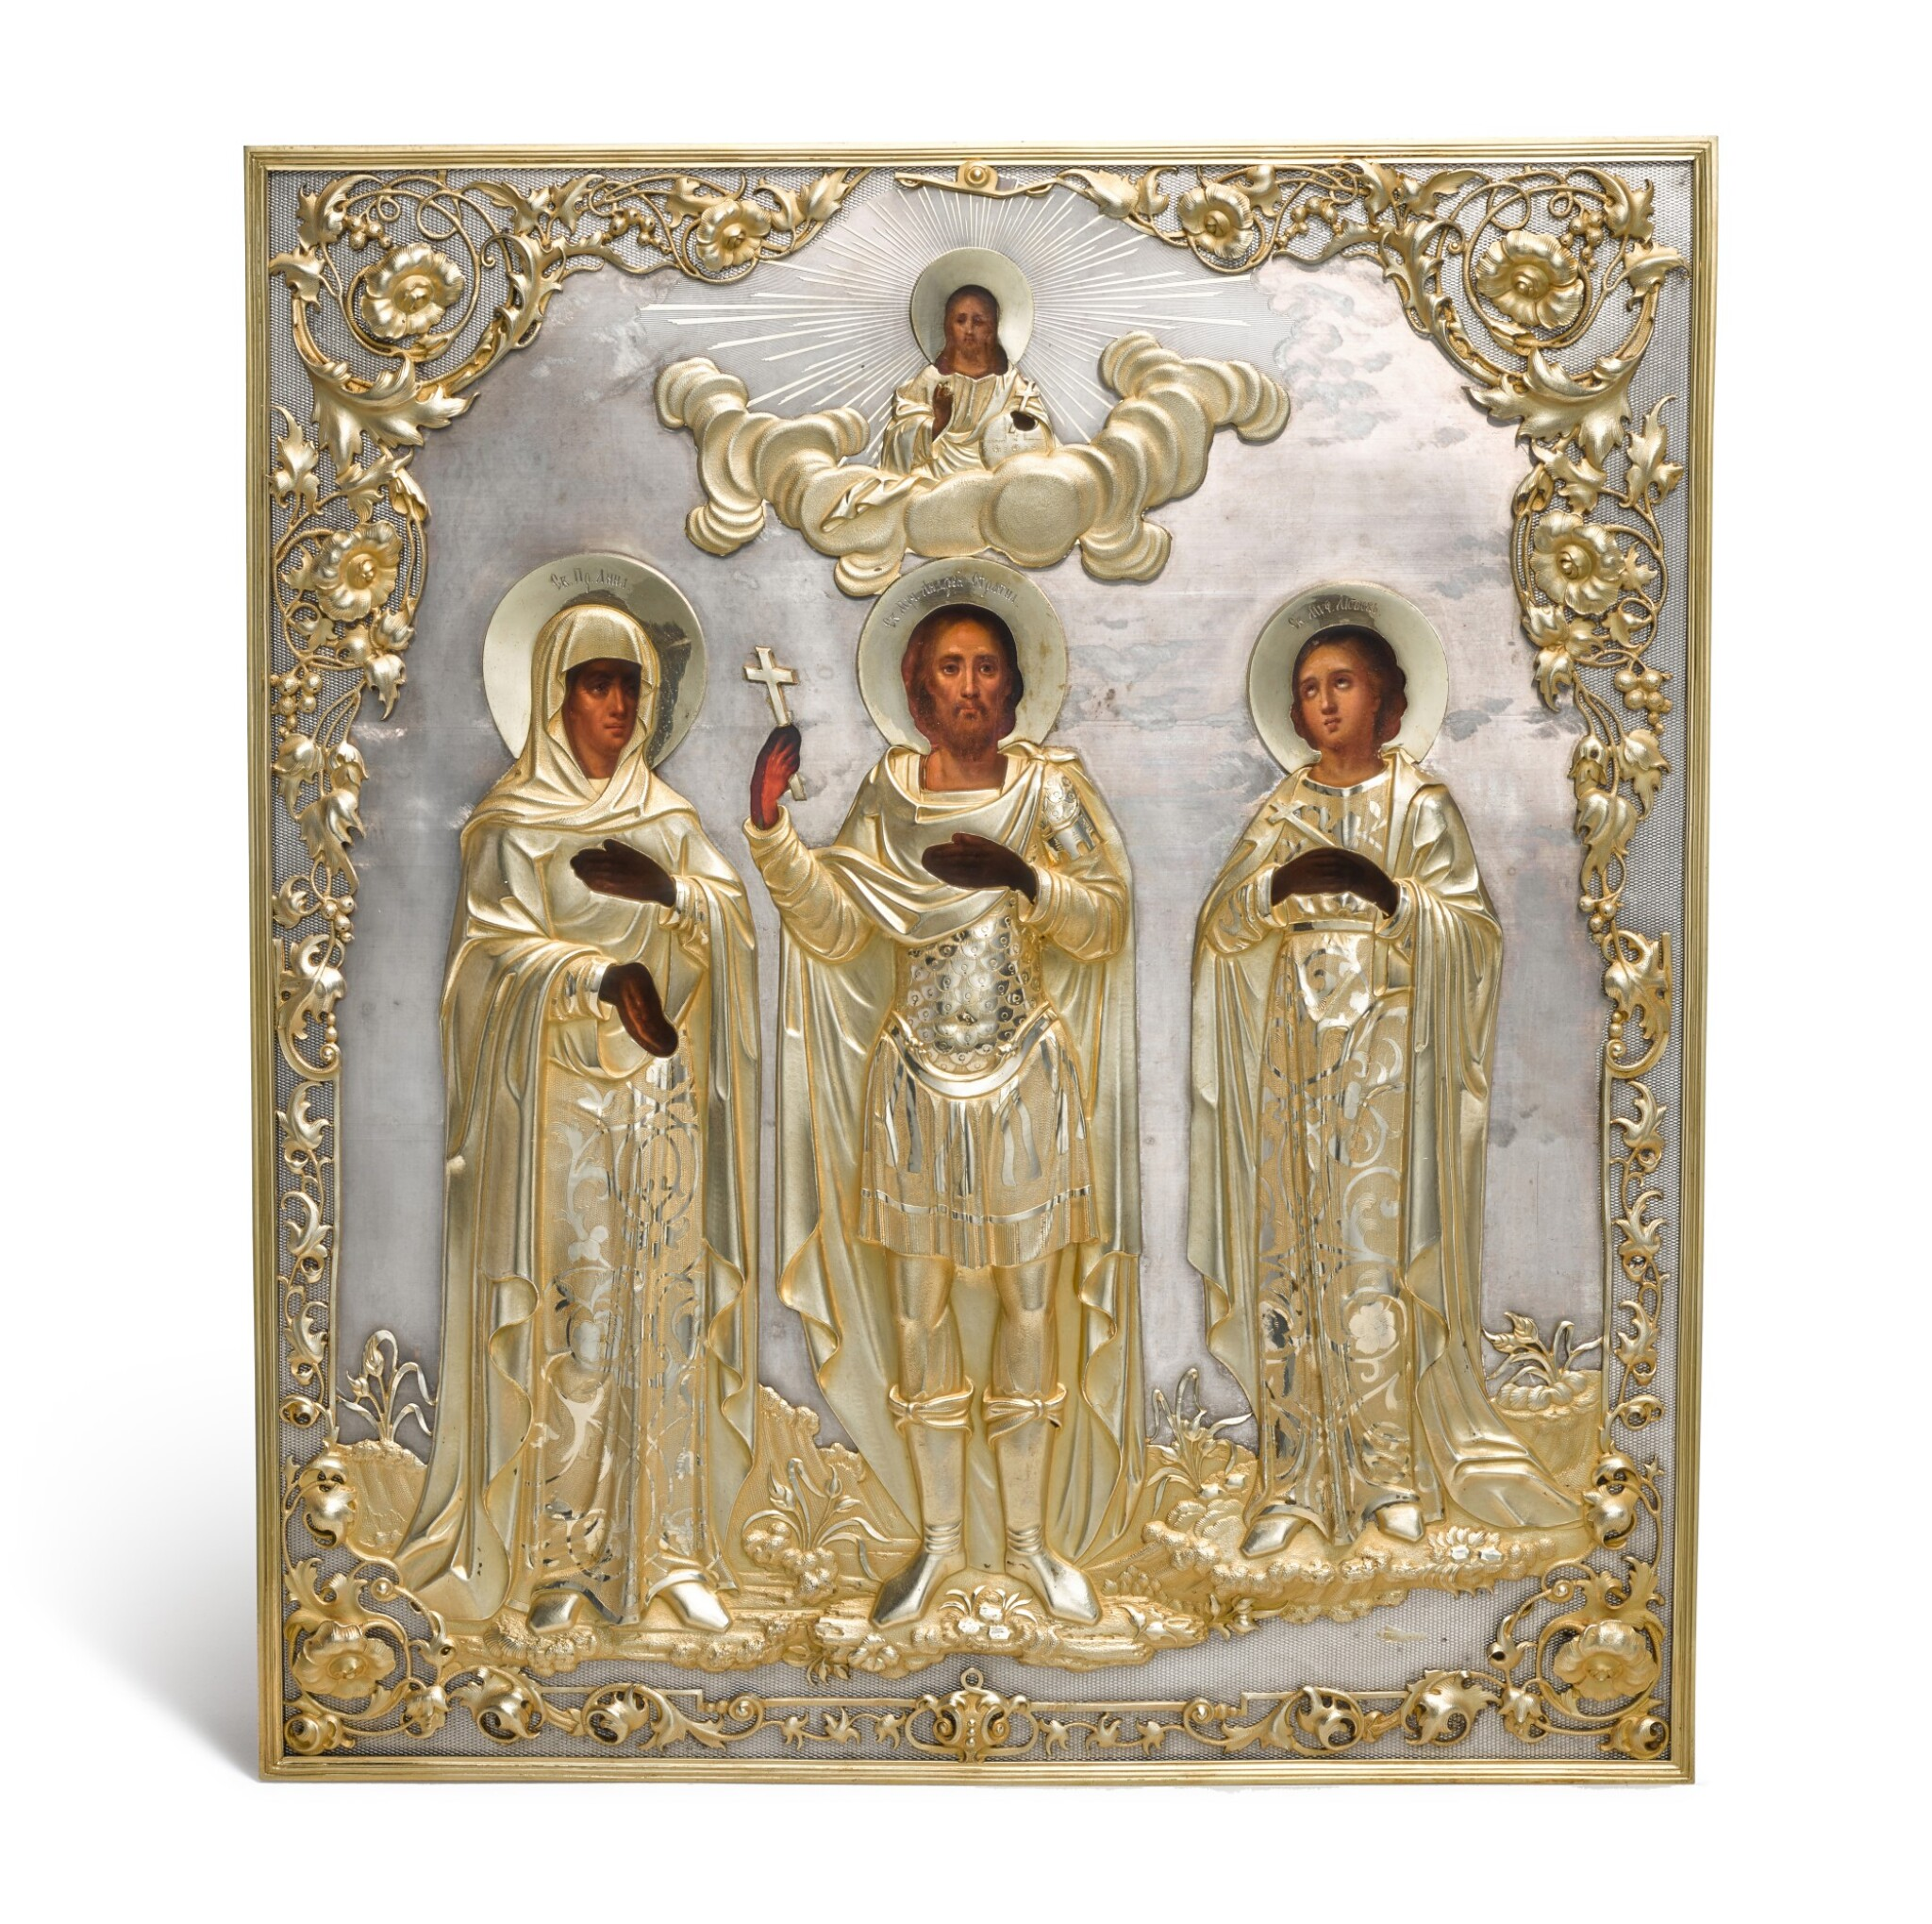 View full screen - View 1 of Lot 223. A PARCEL-GILT ICON OF THE MARTYR SAINT ANDREW STRATELATES, SAINT ANNE AND MARTYR SAINT LUBOV', DMITRIY ORLOV, MOSCOW, 1856.